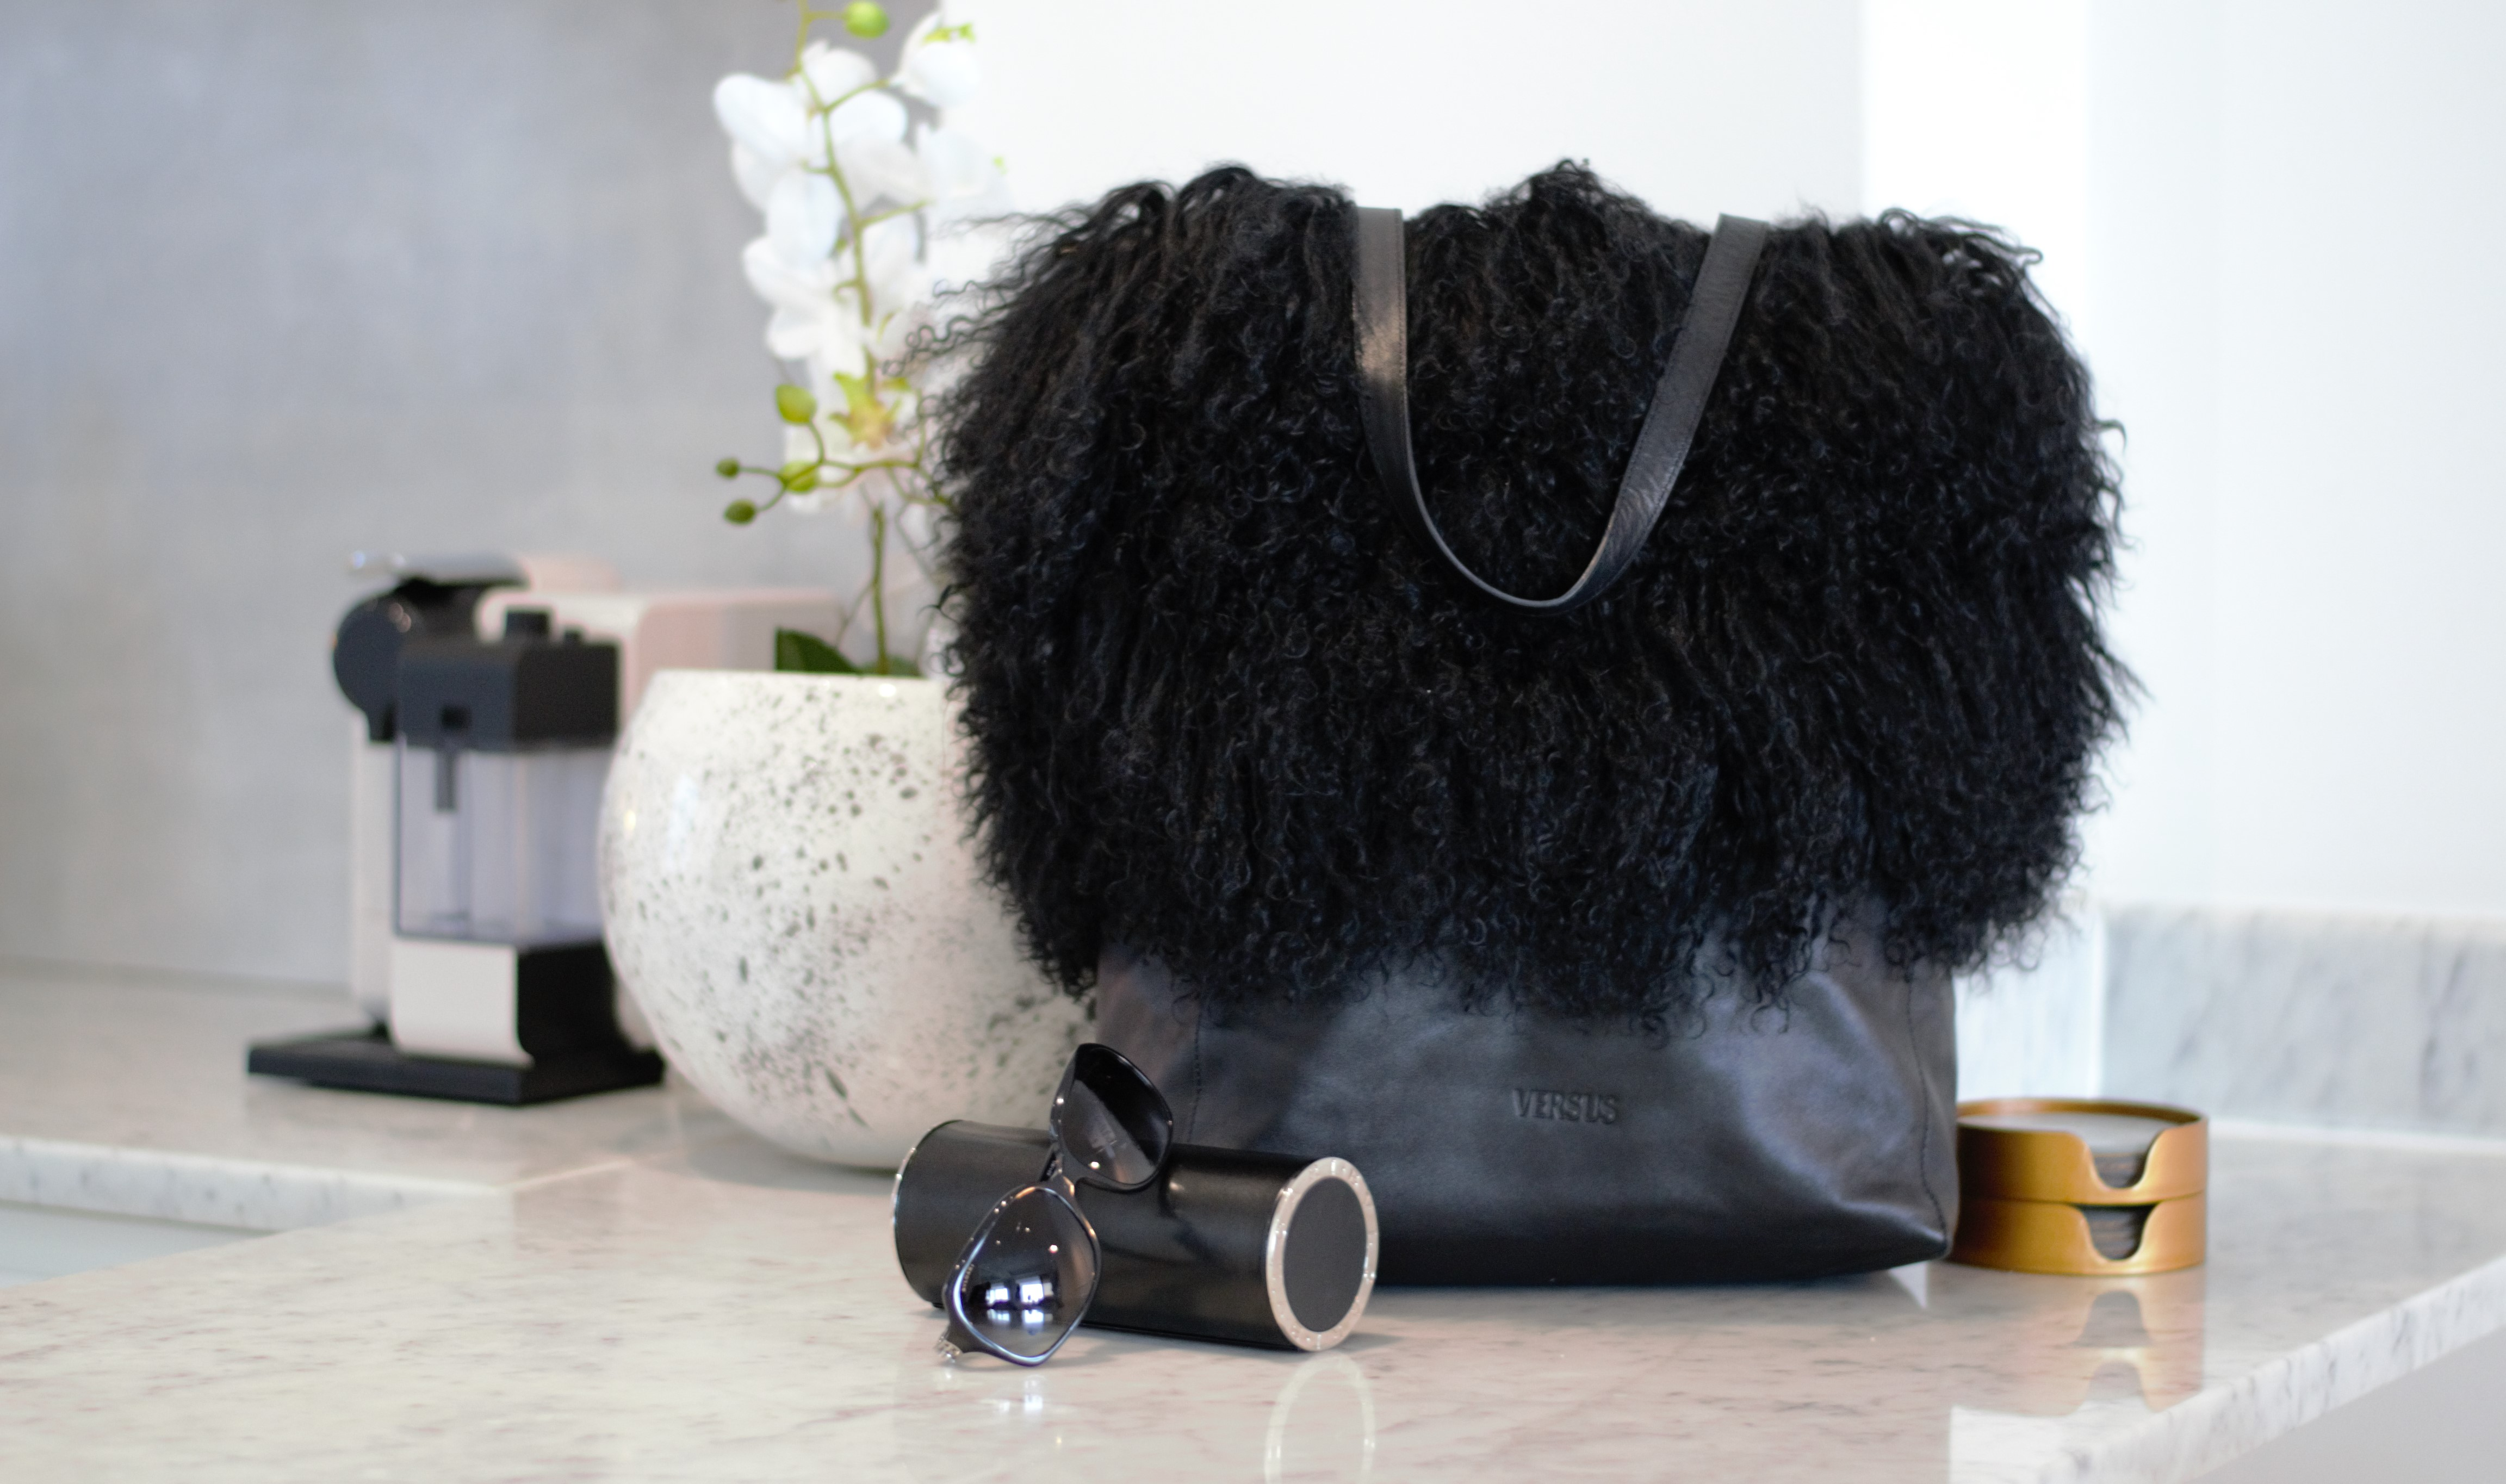 Limited Edition Designer bags